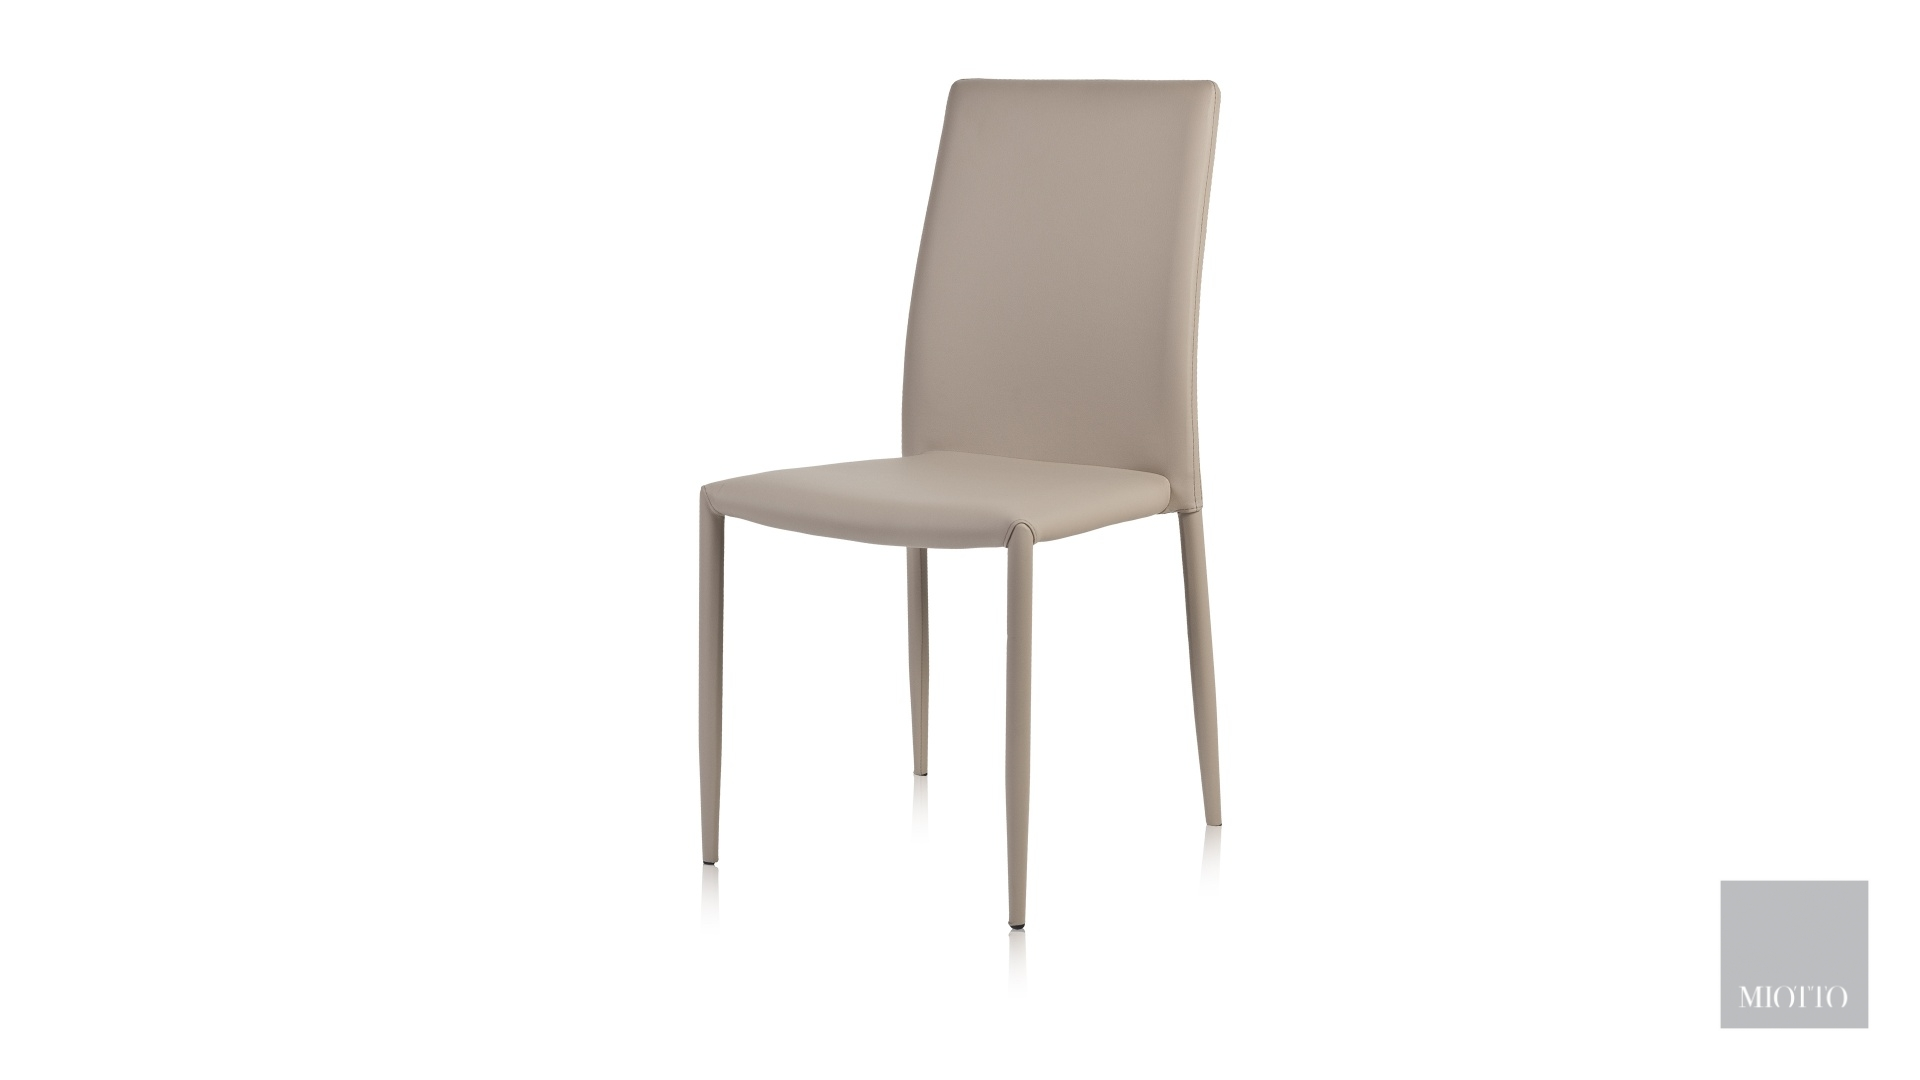 miotto_Lara dining chair pu taupe front miotto furniture